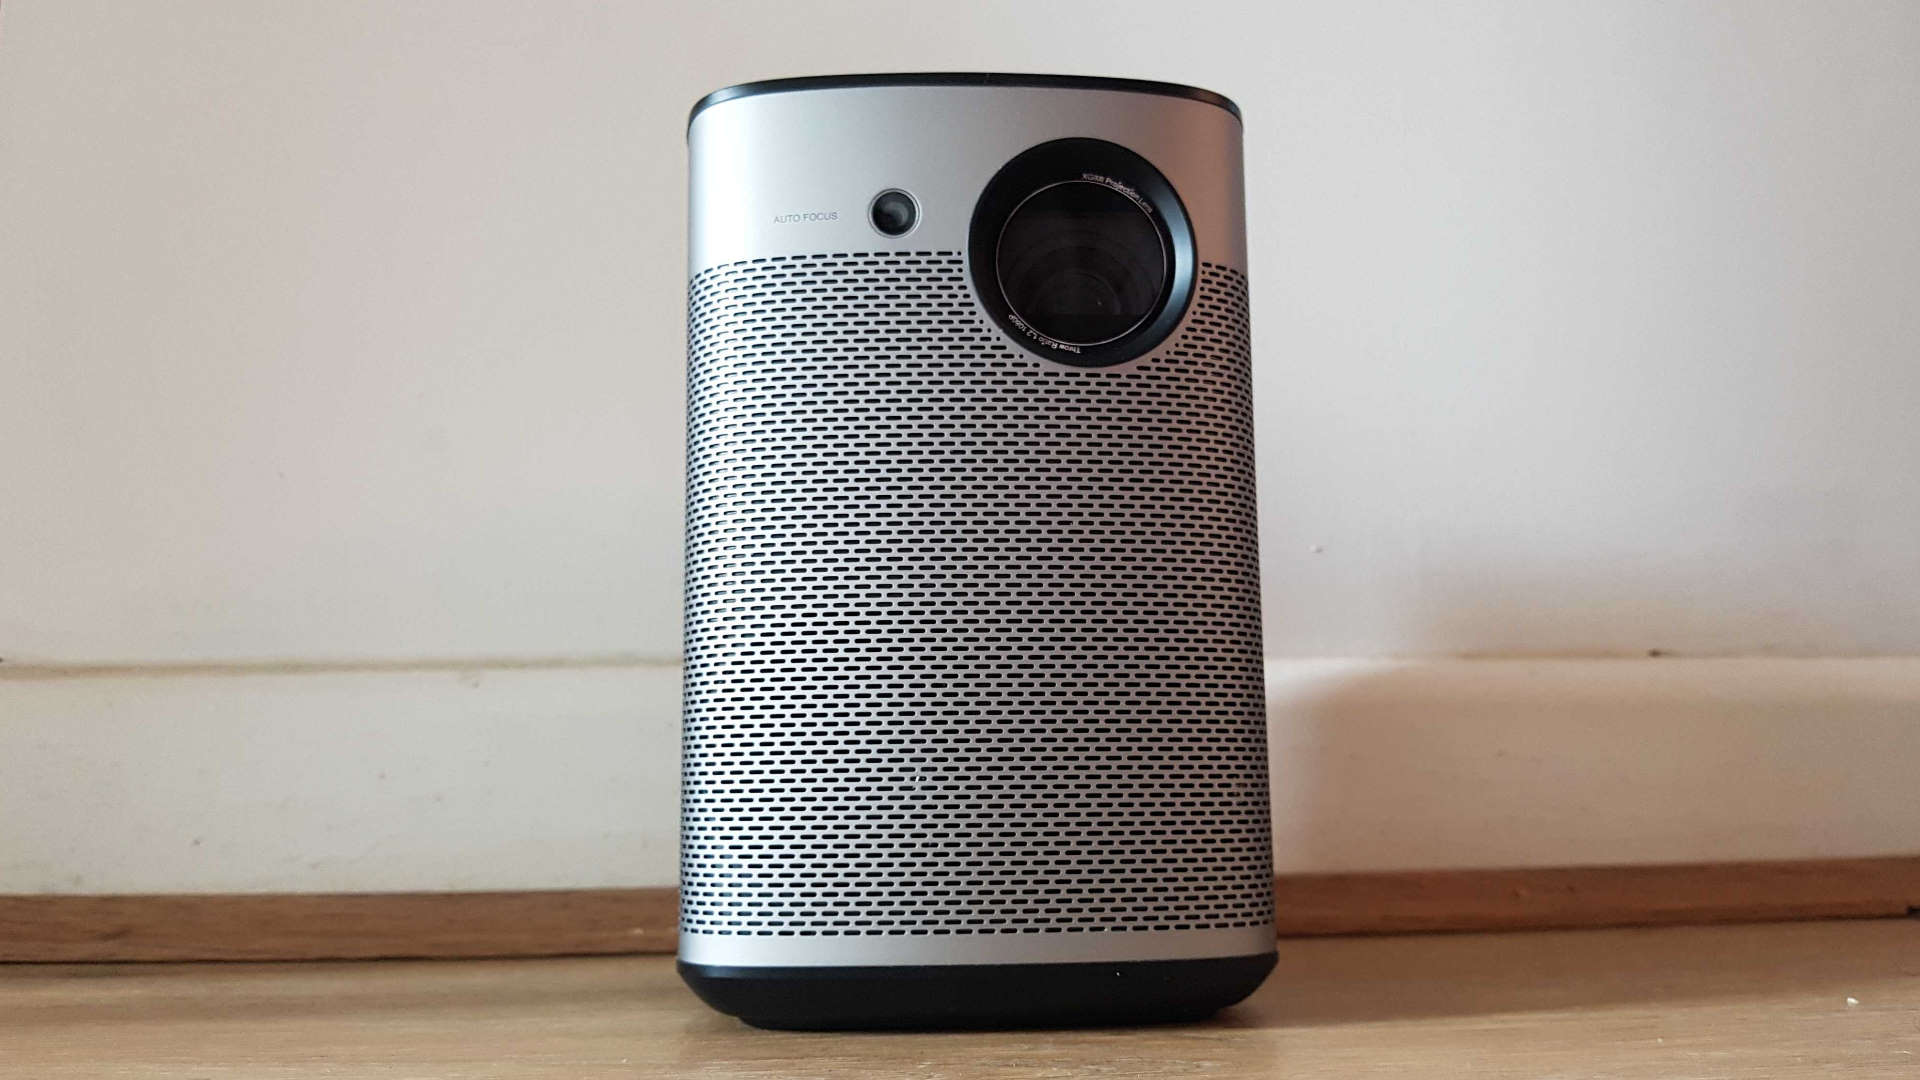 The Xgimi Halo portable projector